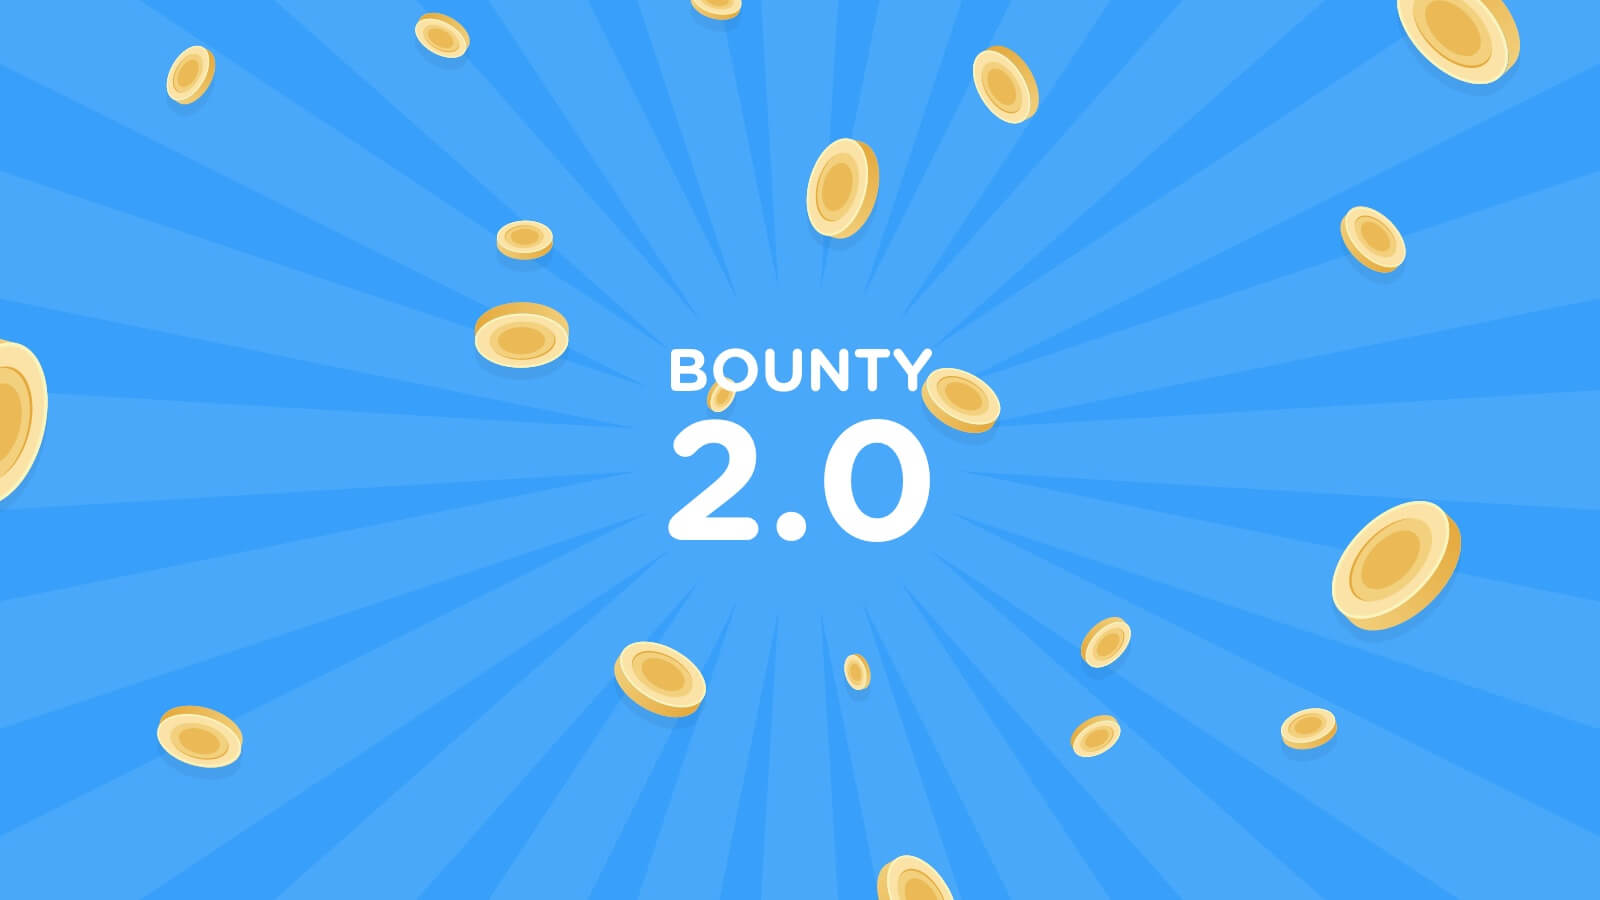 Introducing Bounty 2.0